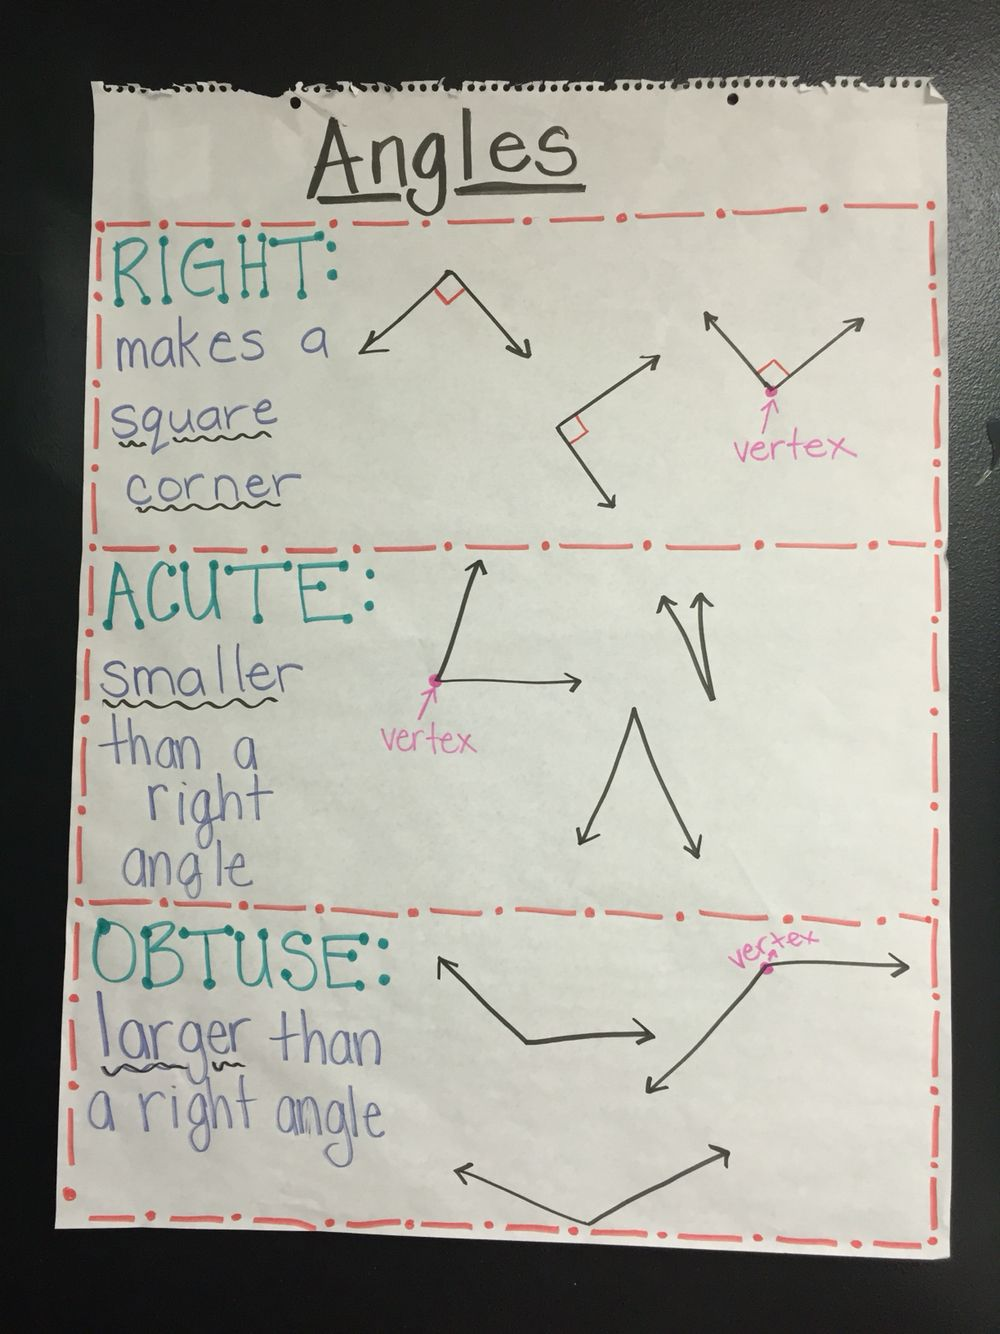 Types Of Angles Anchor Chart Right Angle Acute Angle And Obtuse Angle Angles Anchor Chart Anchor Charts Math Anchor Charts